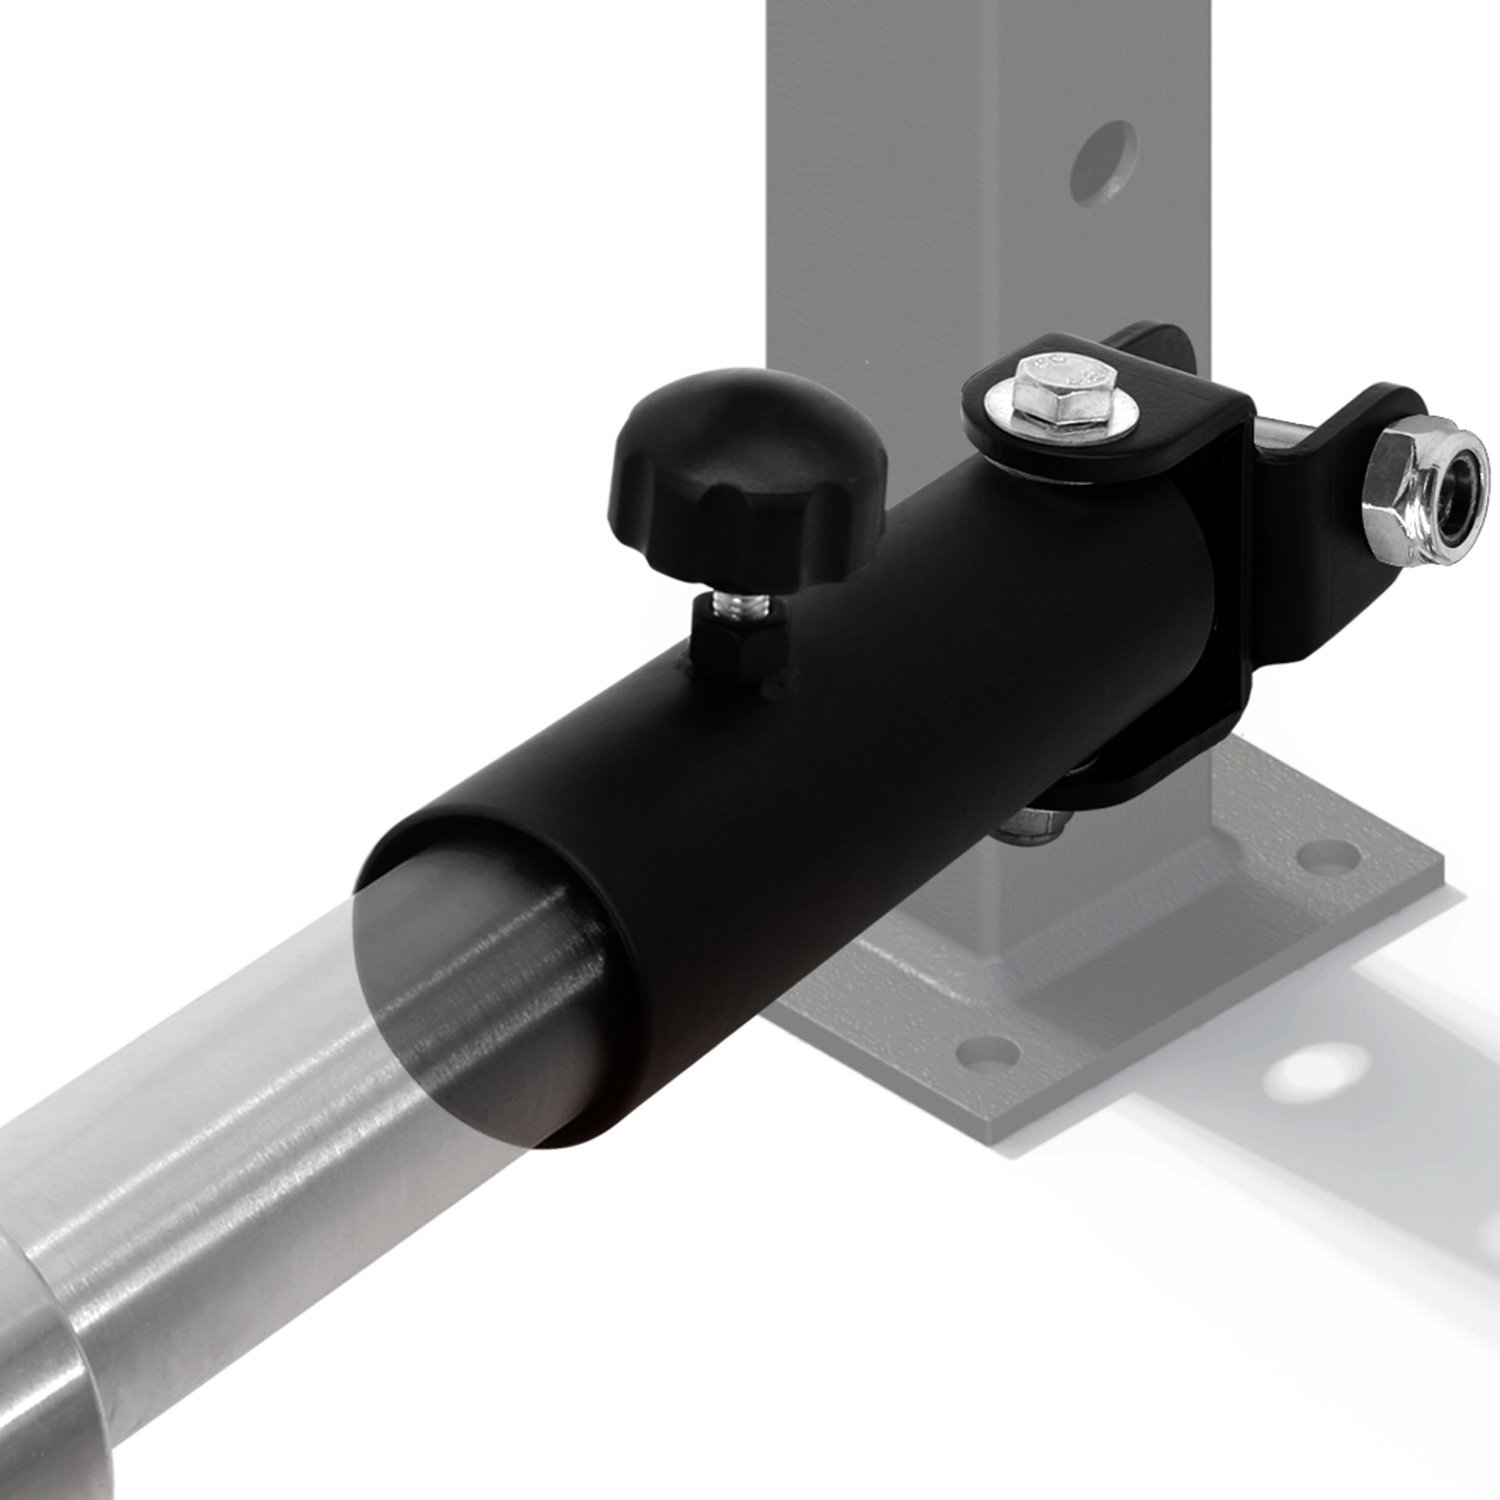 RIGERS T-Bar Row Landmine Power Rack Attachment - Compatible with 2x2 2x3 & 3x2 Rack - Fit 2'' Olympic Bars